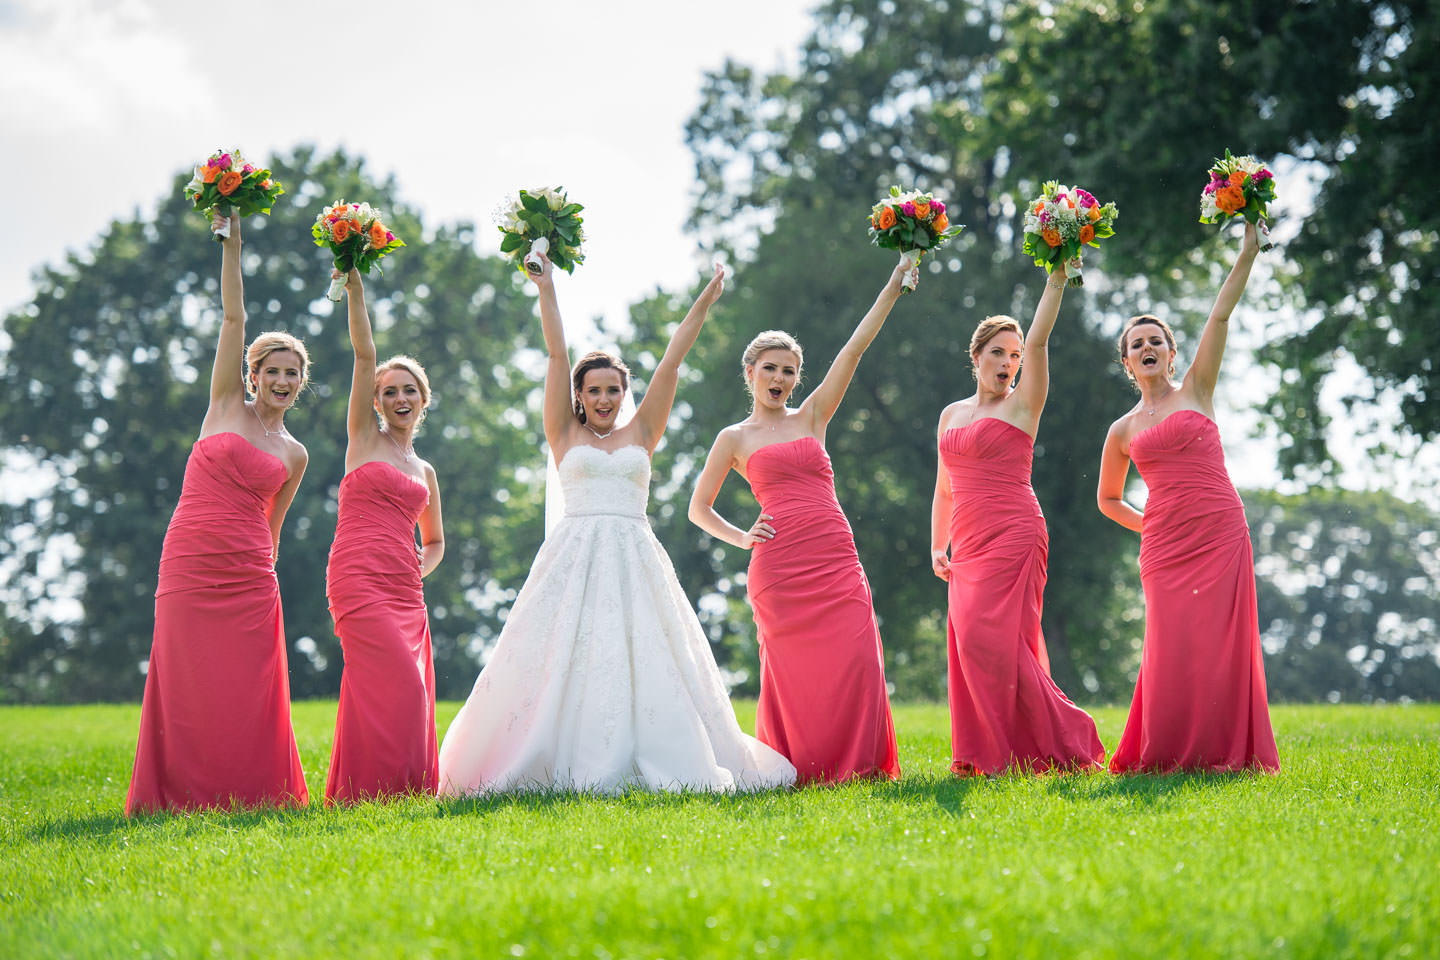 bride and bridal party happy and cheering in fort totten park new york